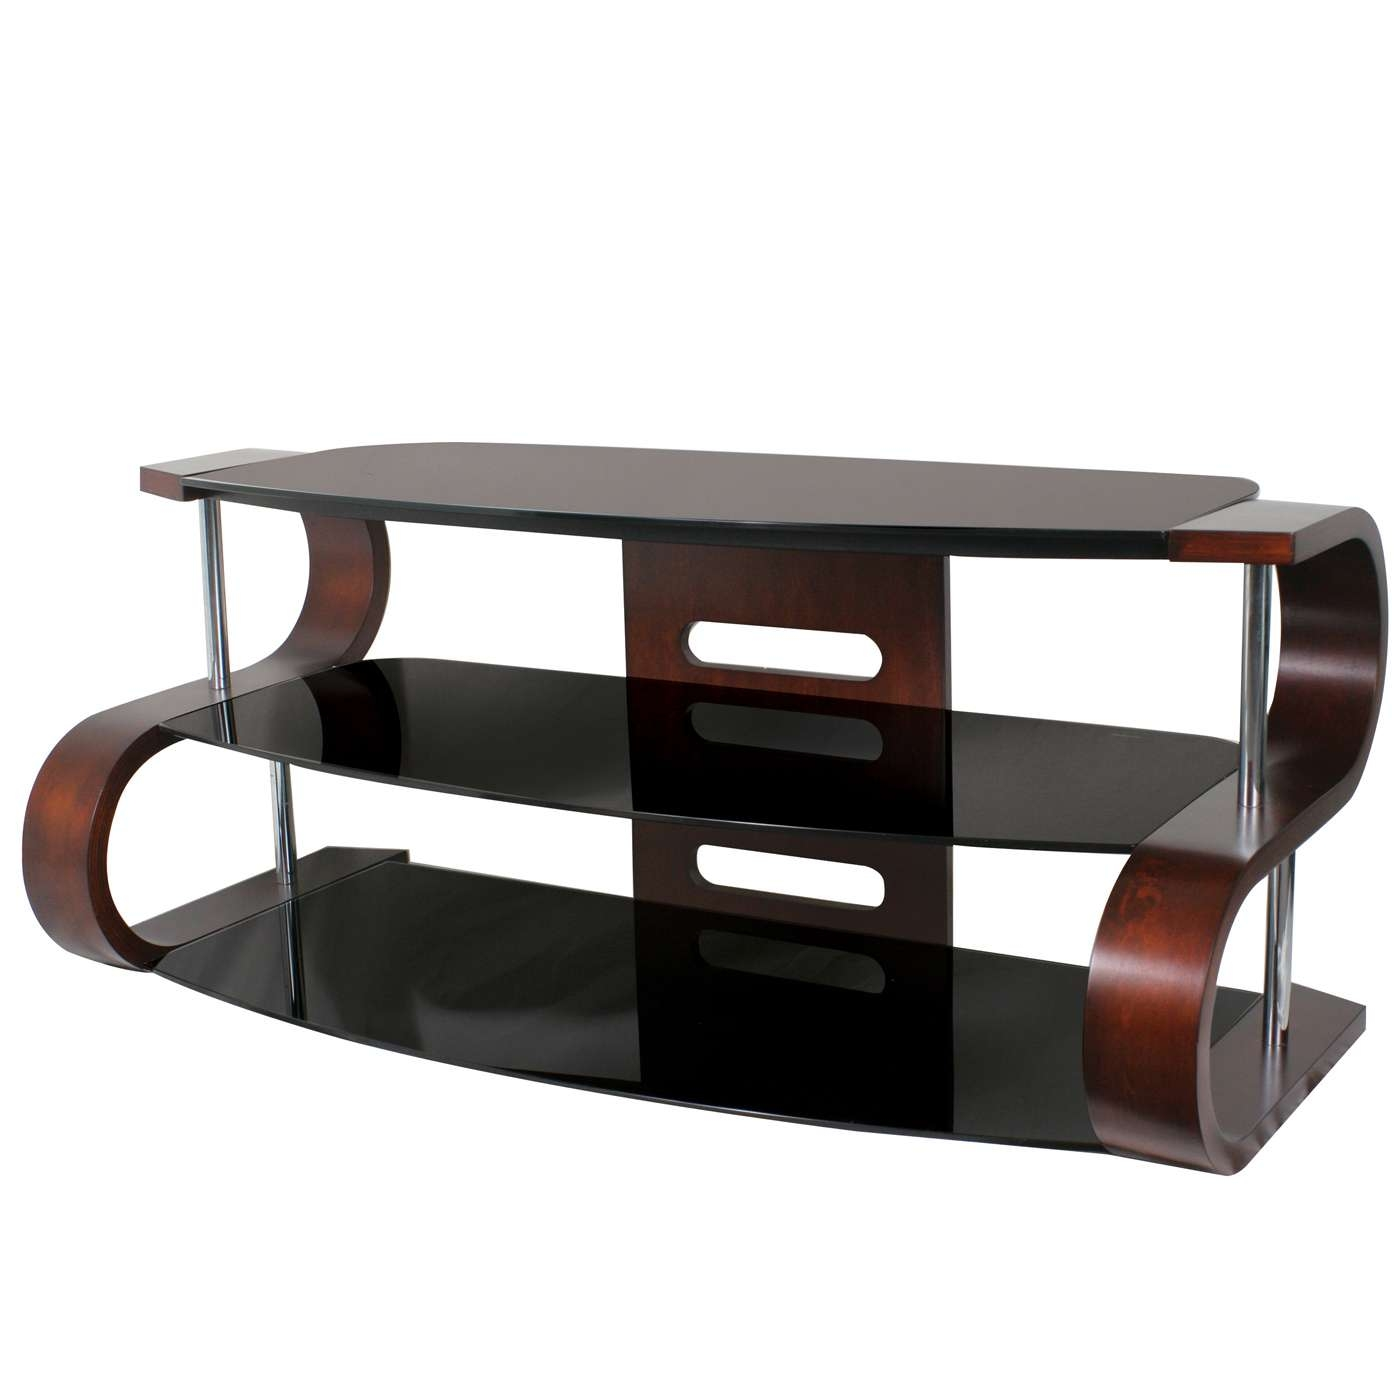 Tv Stand : Dark Wood Tv Stand Stands Rustic Farmhouse Standdark With Dark Wood Tv Cabinets (View 20 of 20)